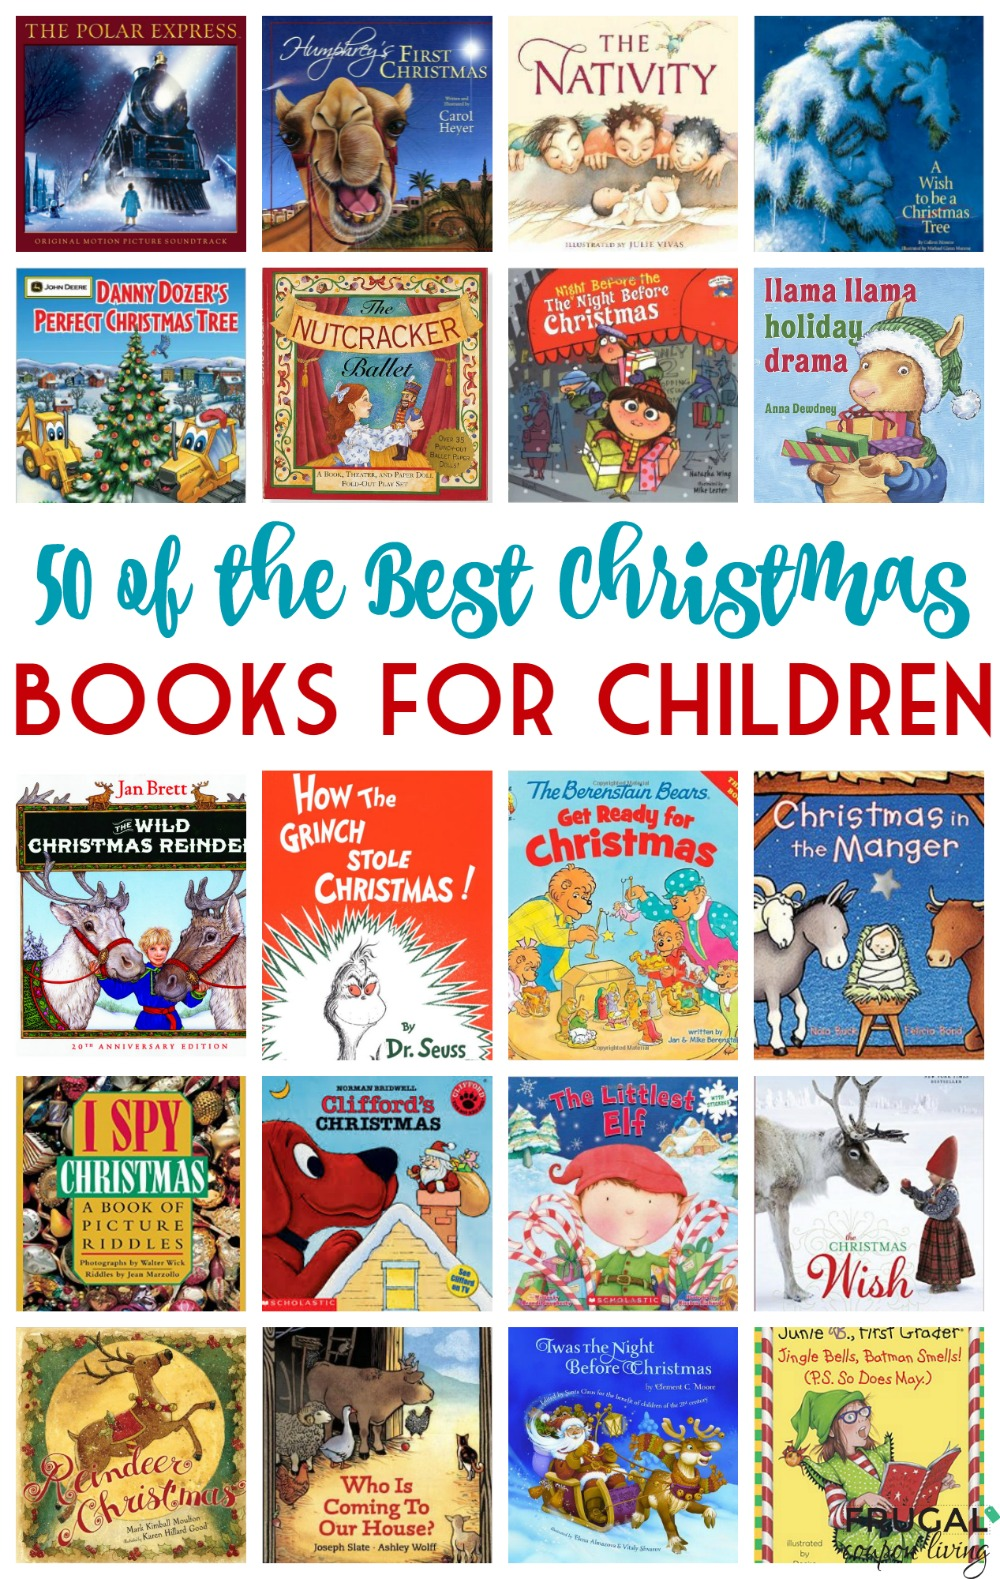 50 of the Best Christmas Books for Children